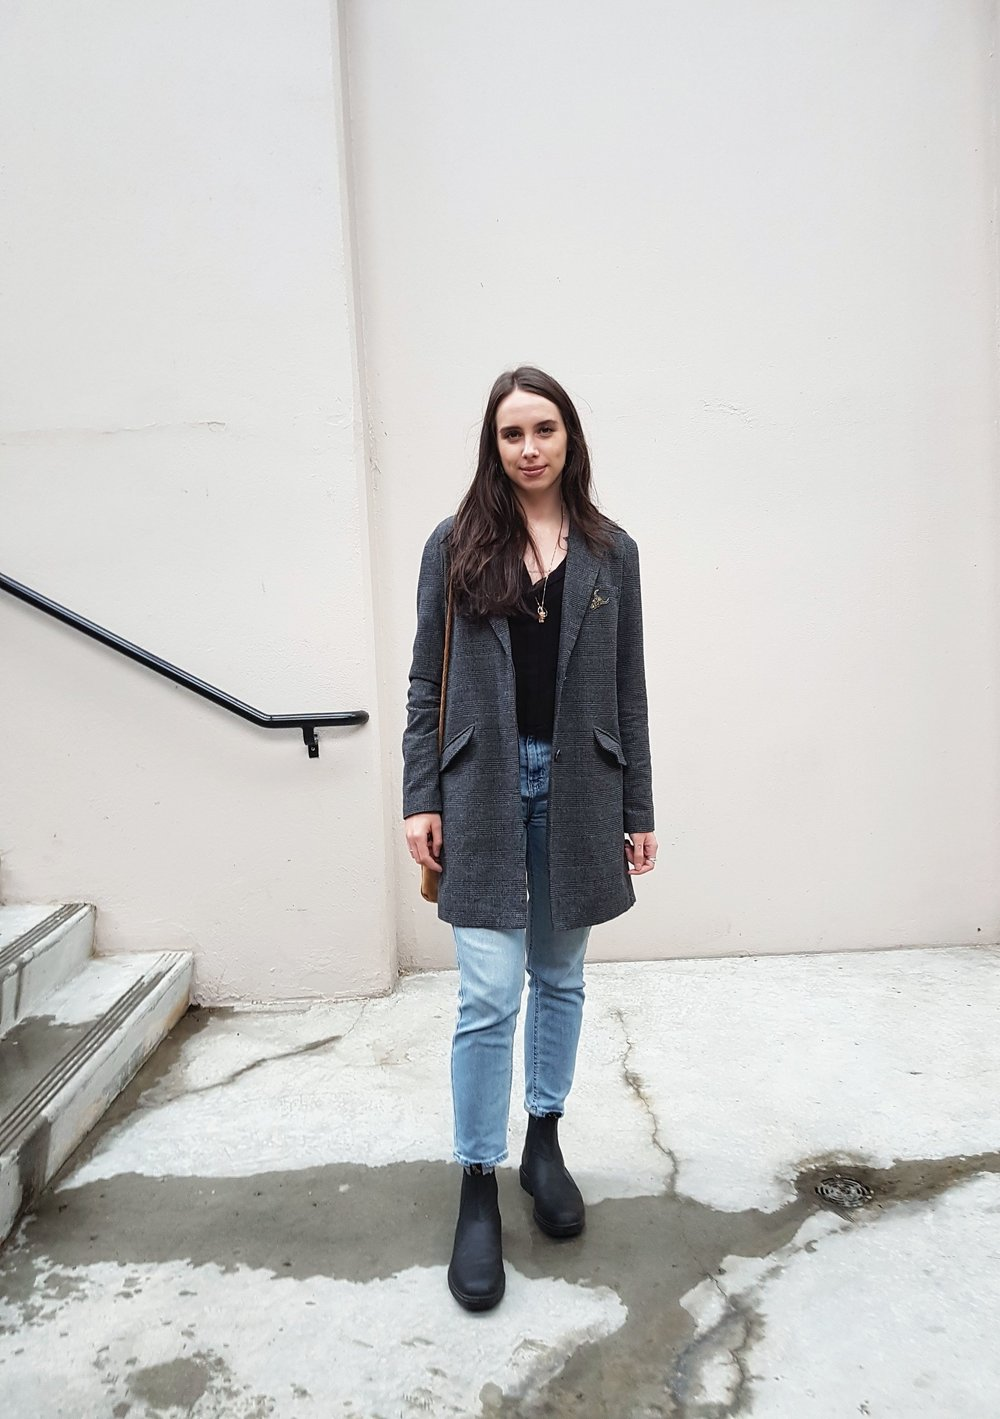 THURSDAY - Aritzia Wilfred shirt, 8th&Main coat, BDG jeans, Blundstone boots*My fave outfit of the week. It's so simple, but I love the clean lines and how comfy it is.